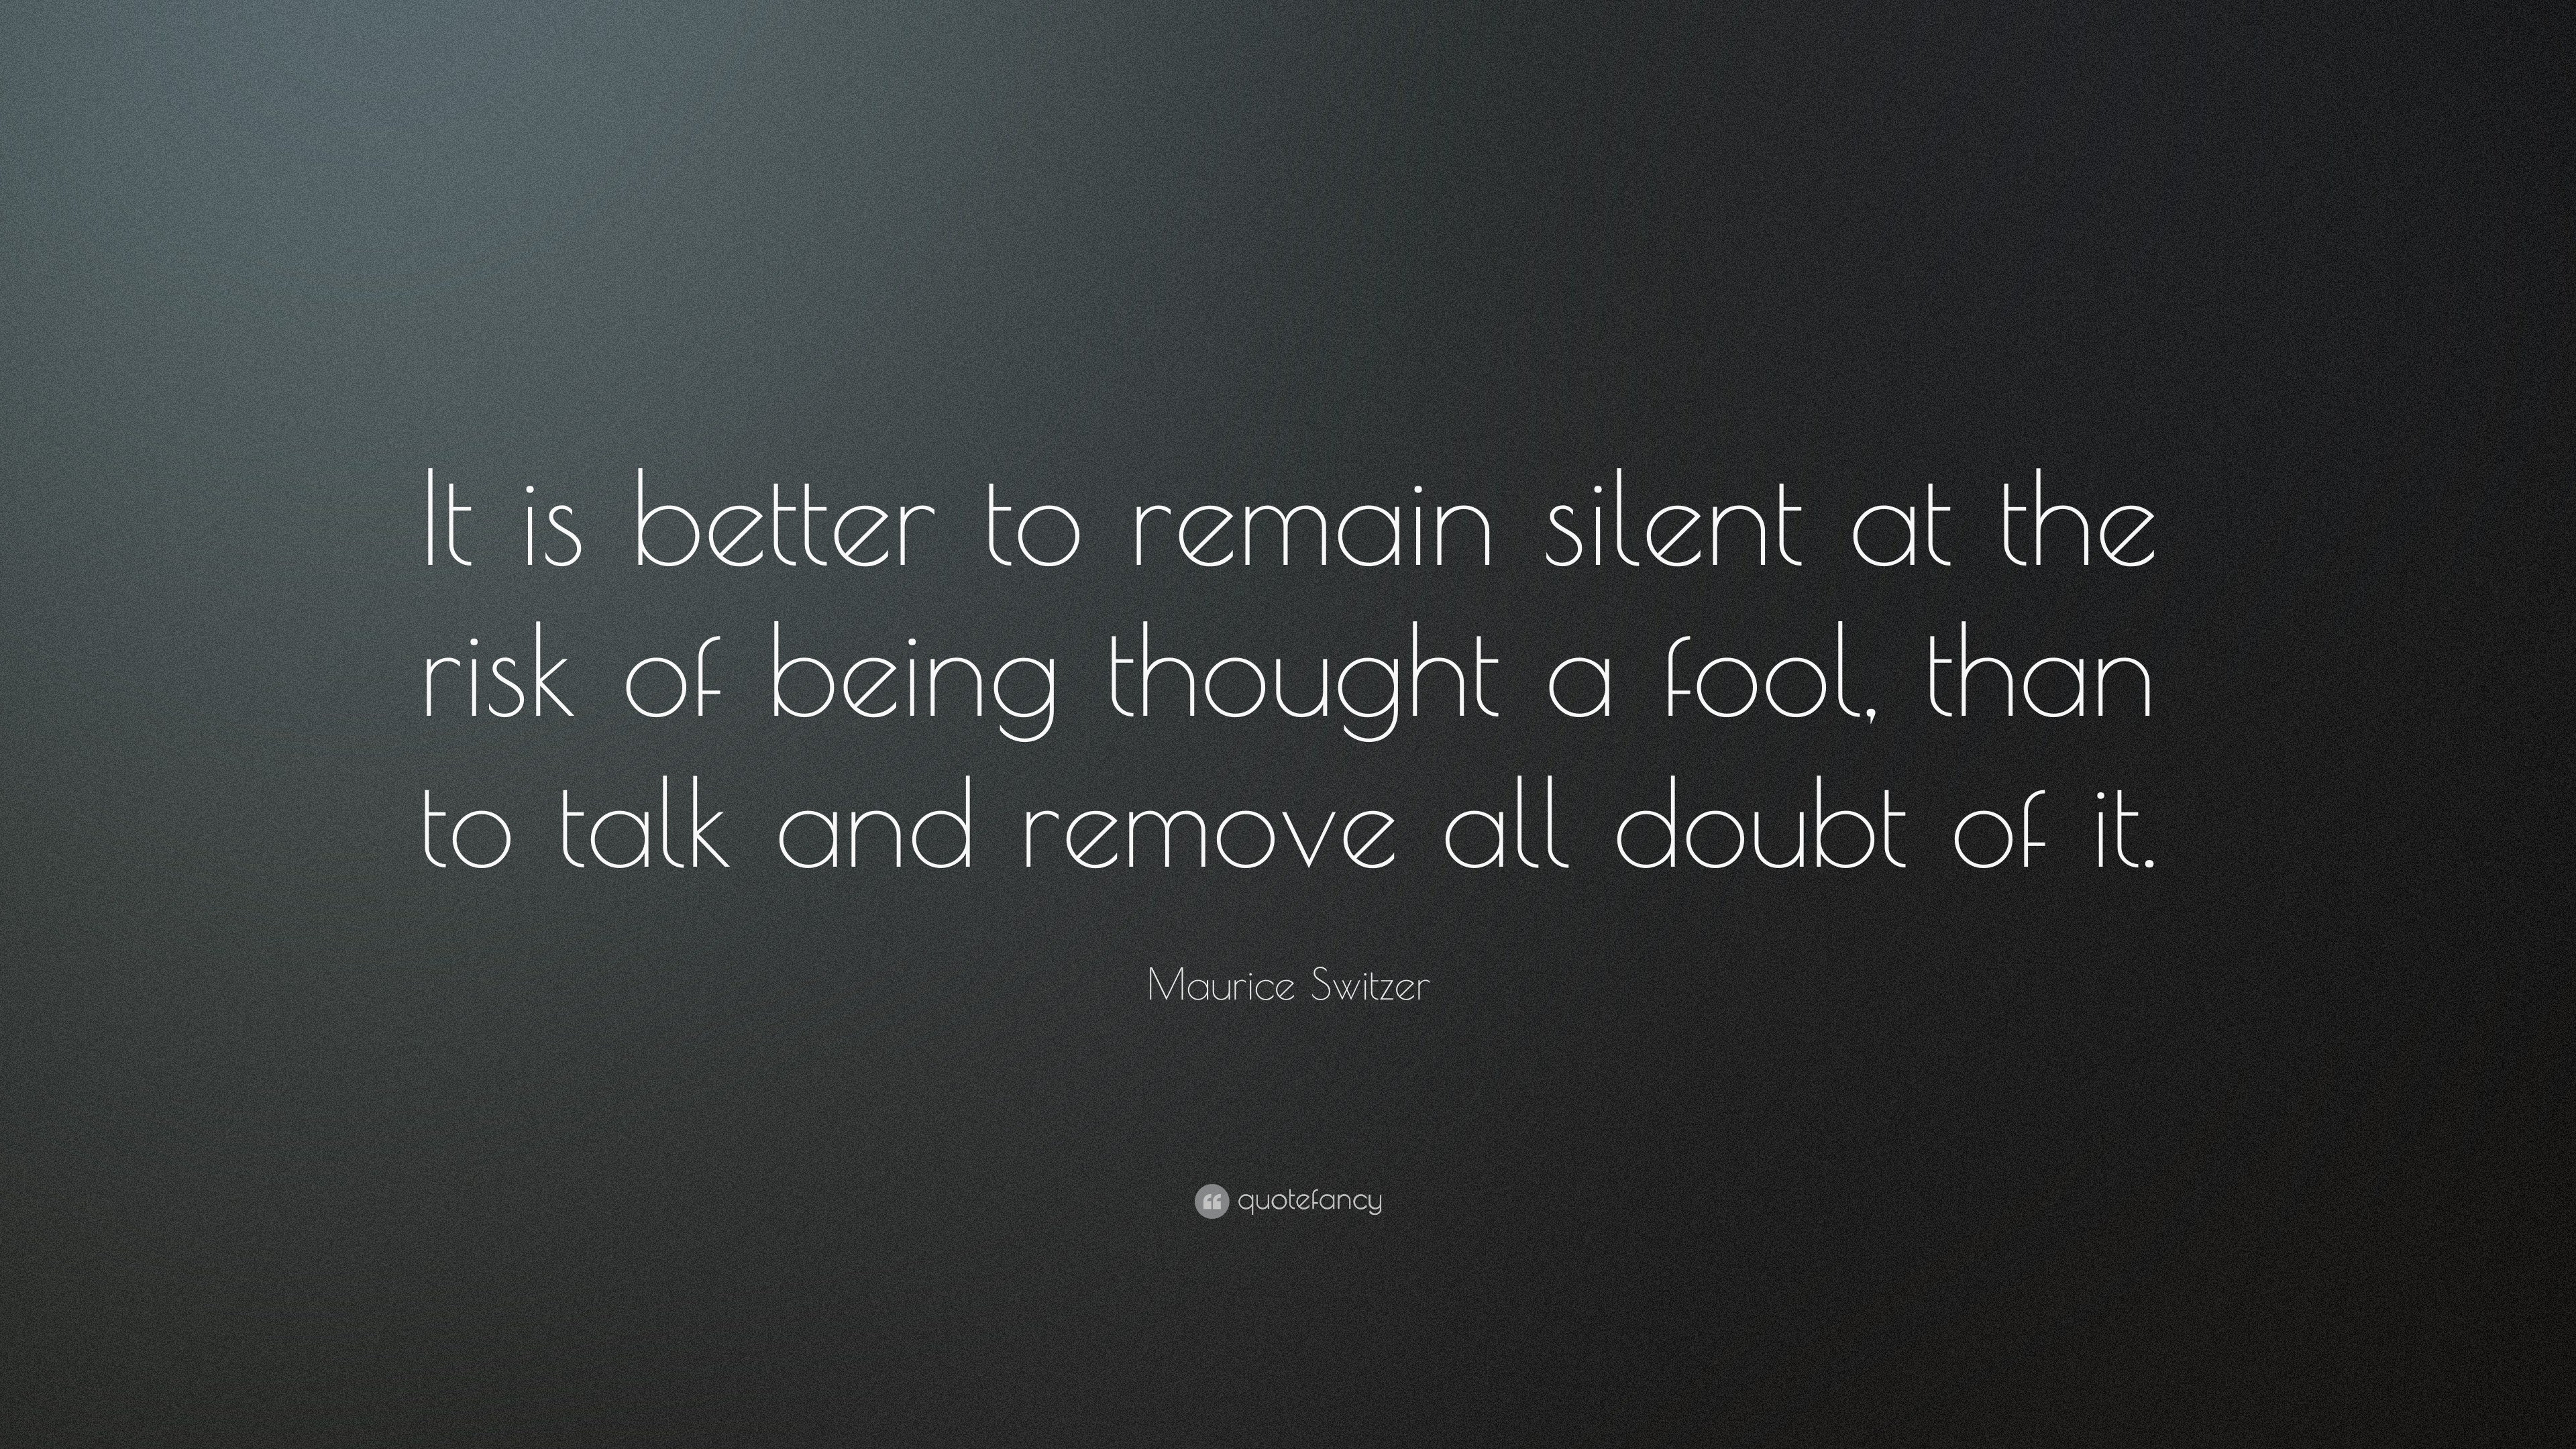 Maurice Switzer Quote It Is Better To Remain Silent At The Risk Of